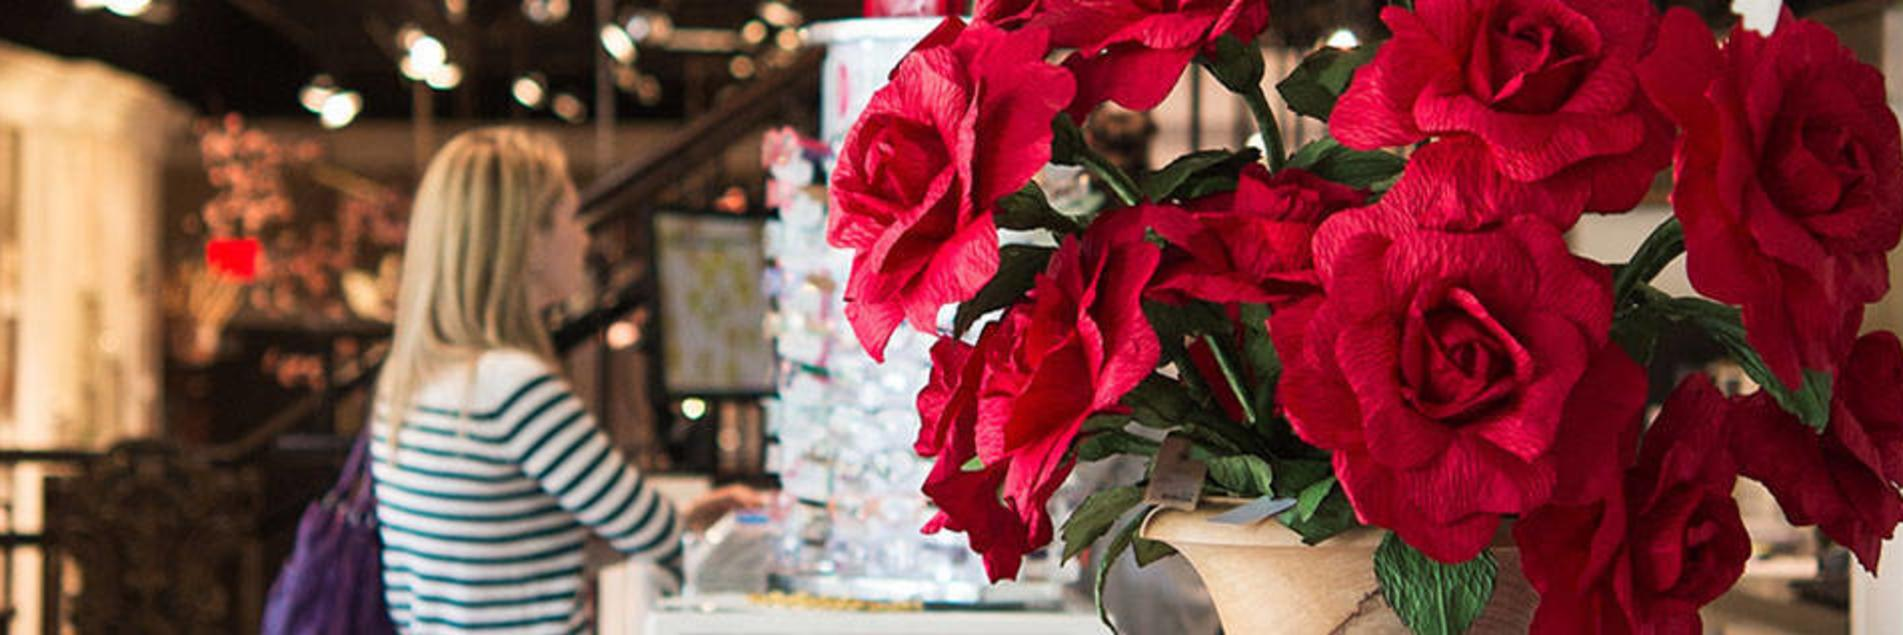 Bella Arte Florist Shopping In Lexington Ky Horse Capital Of The World